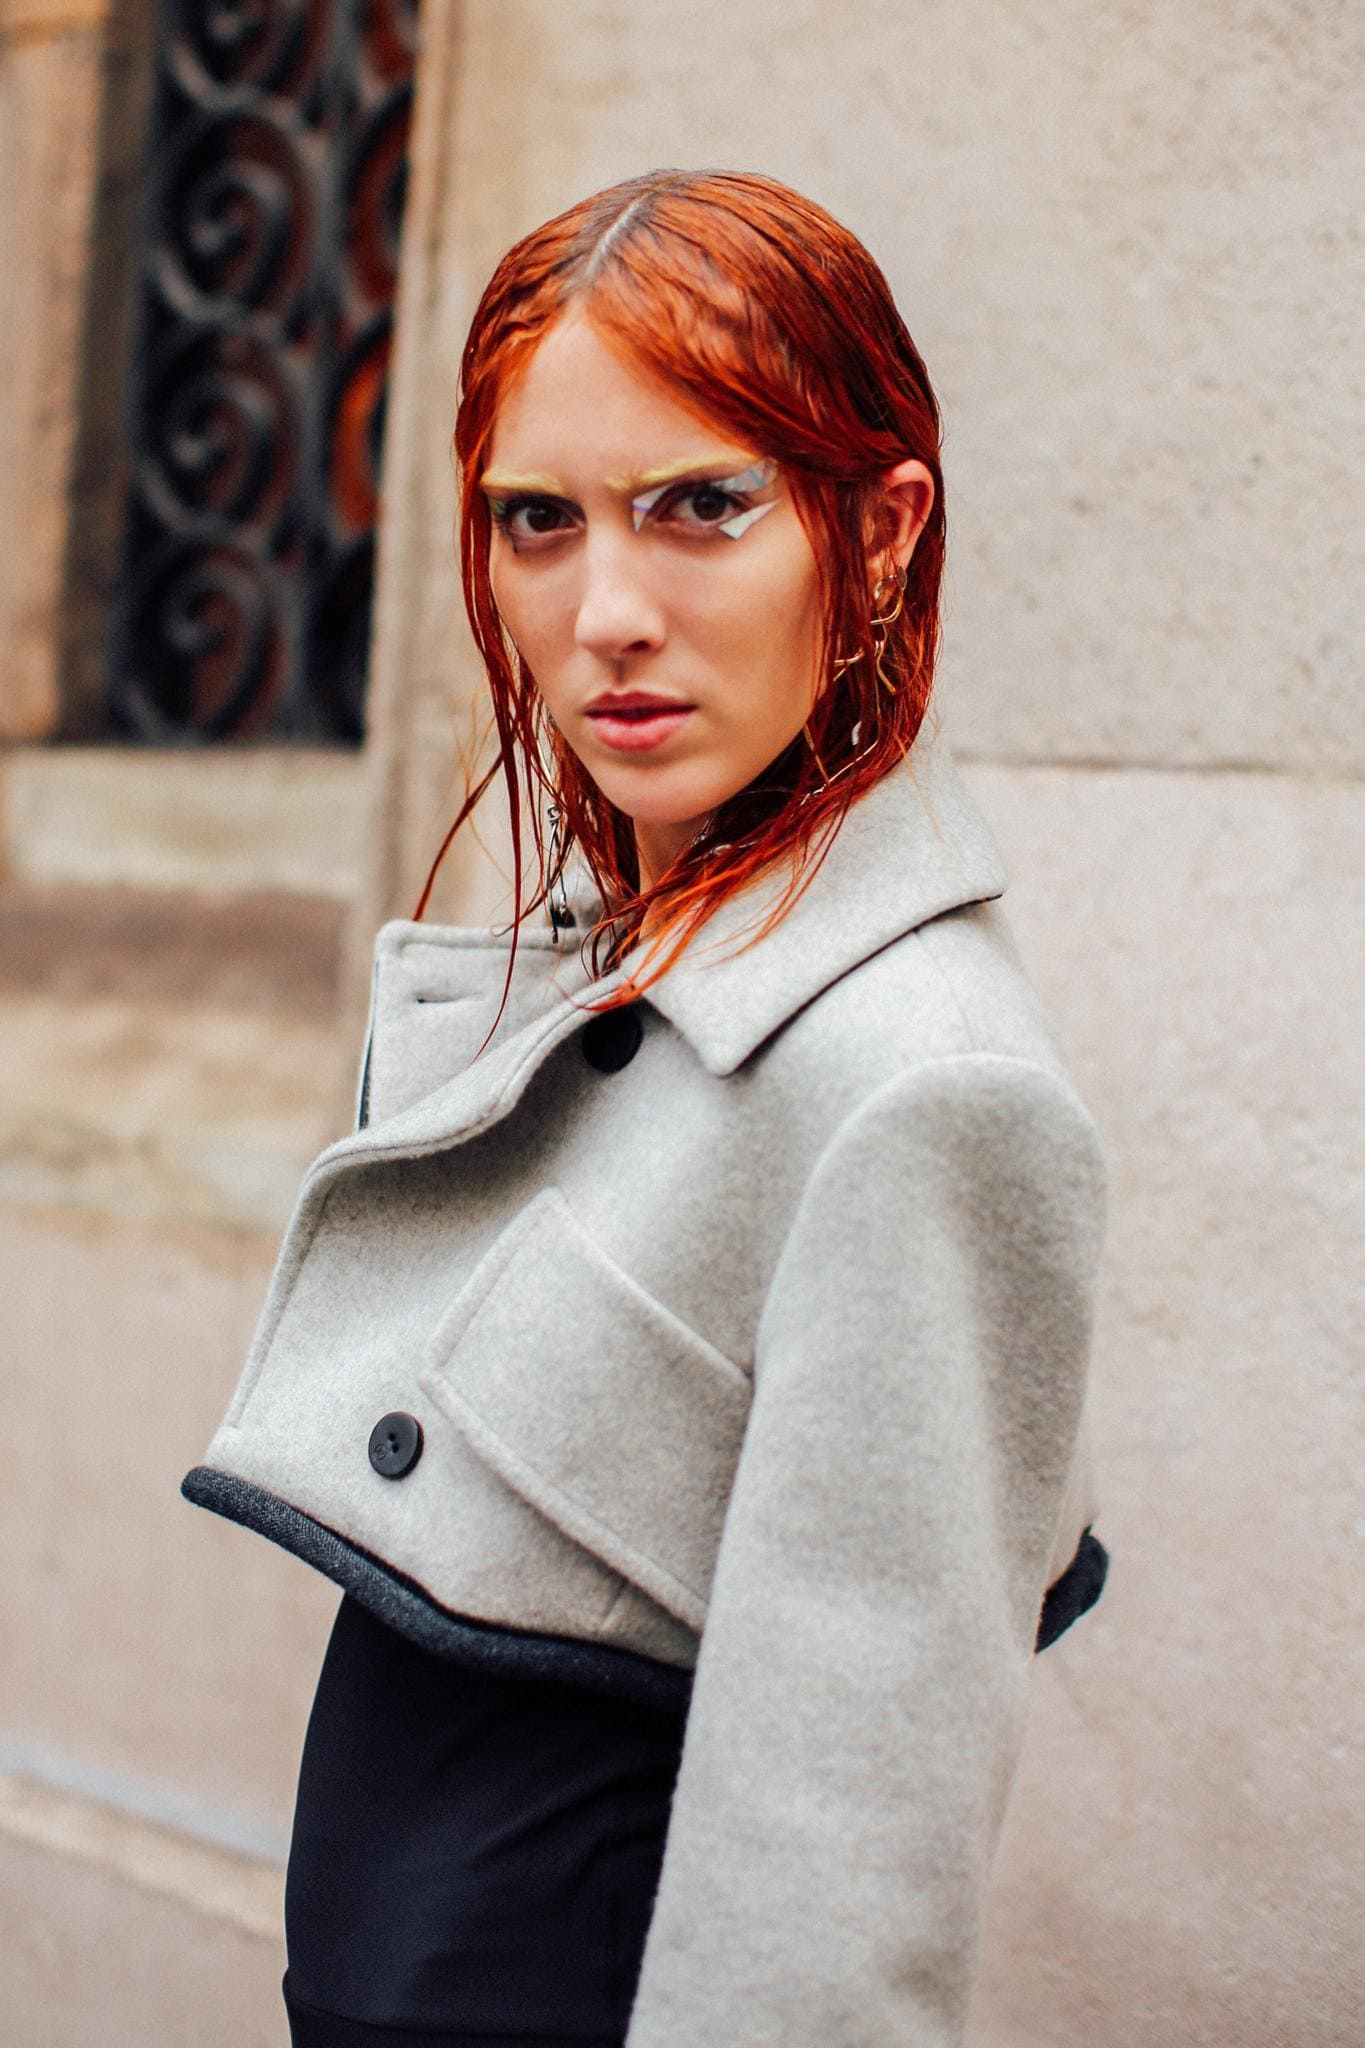 Edgy Hairstyles For Long Hair 11 Practical Style Ideas